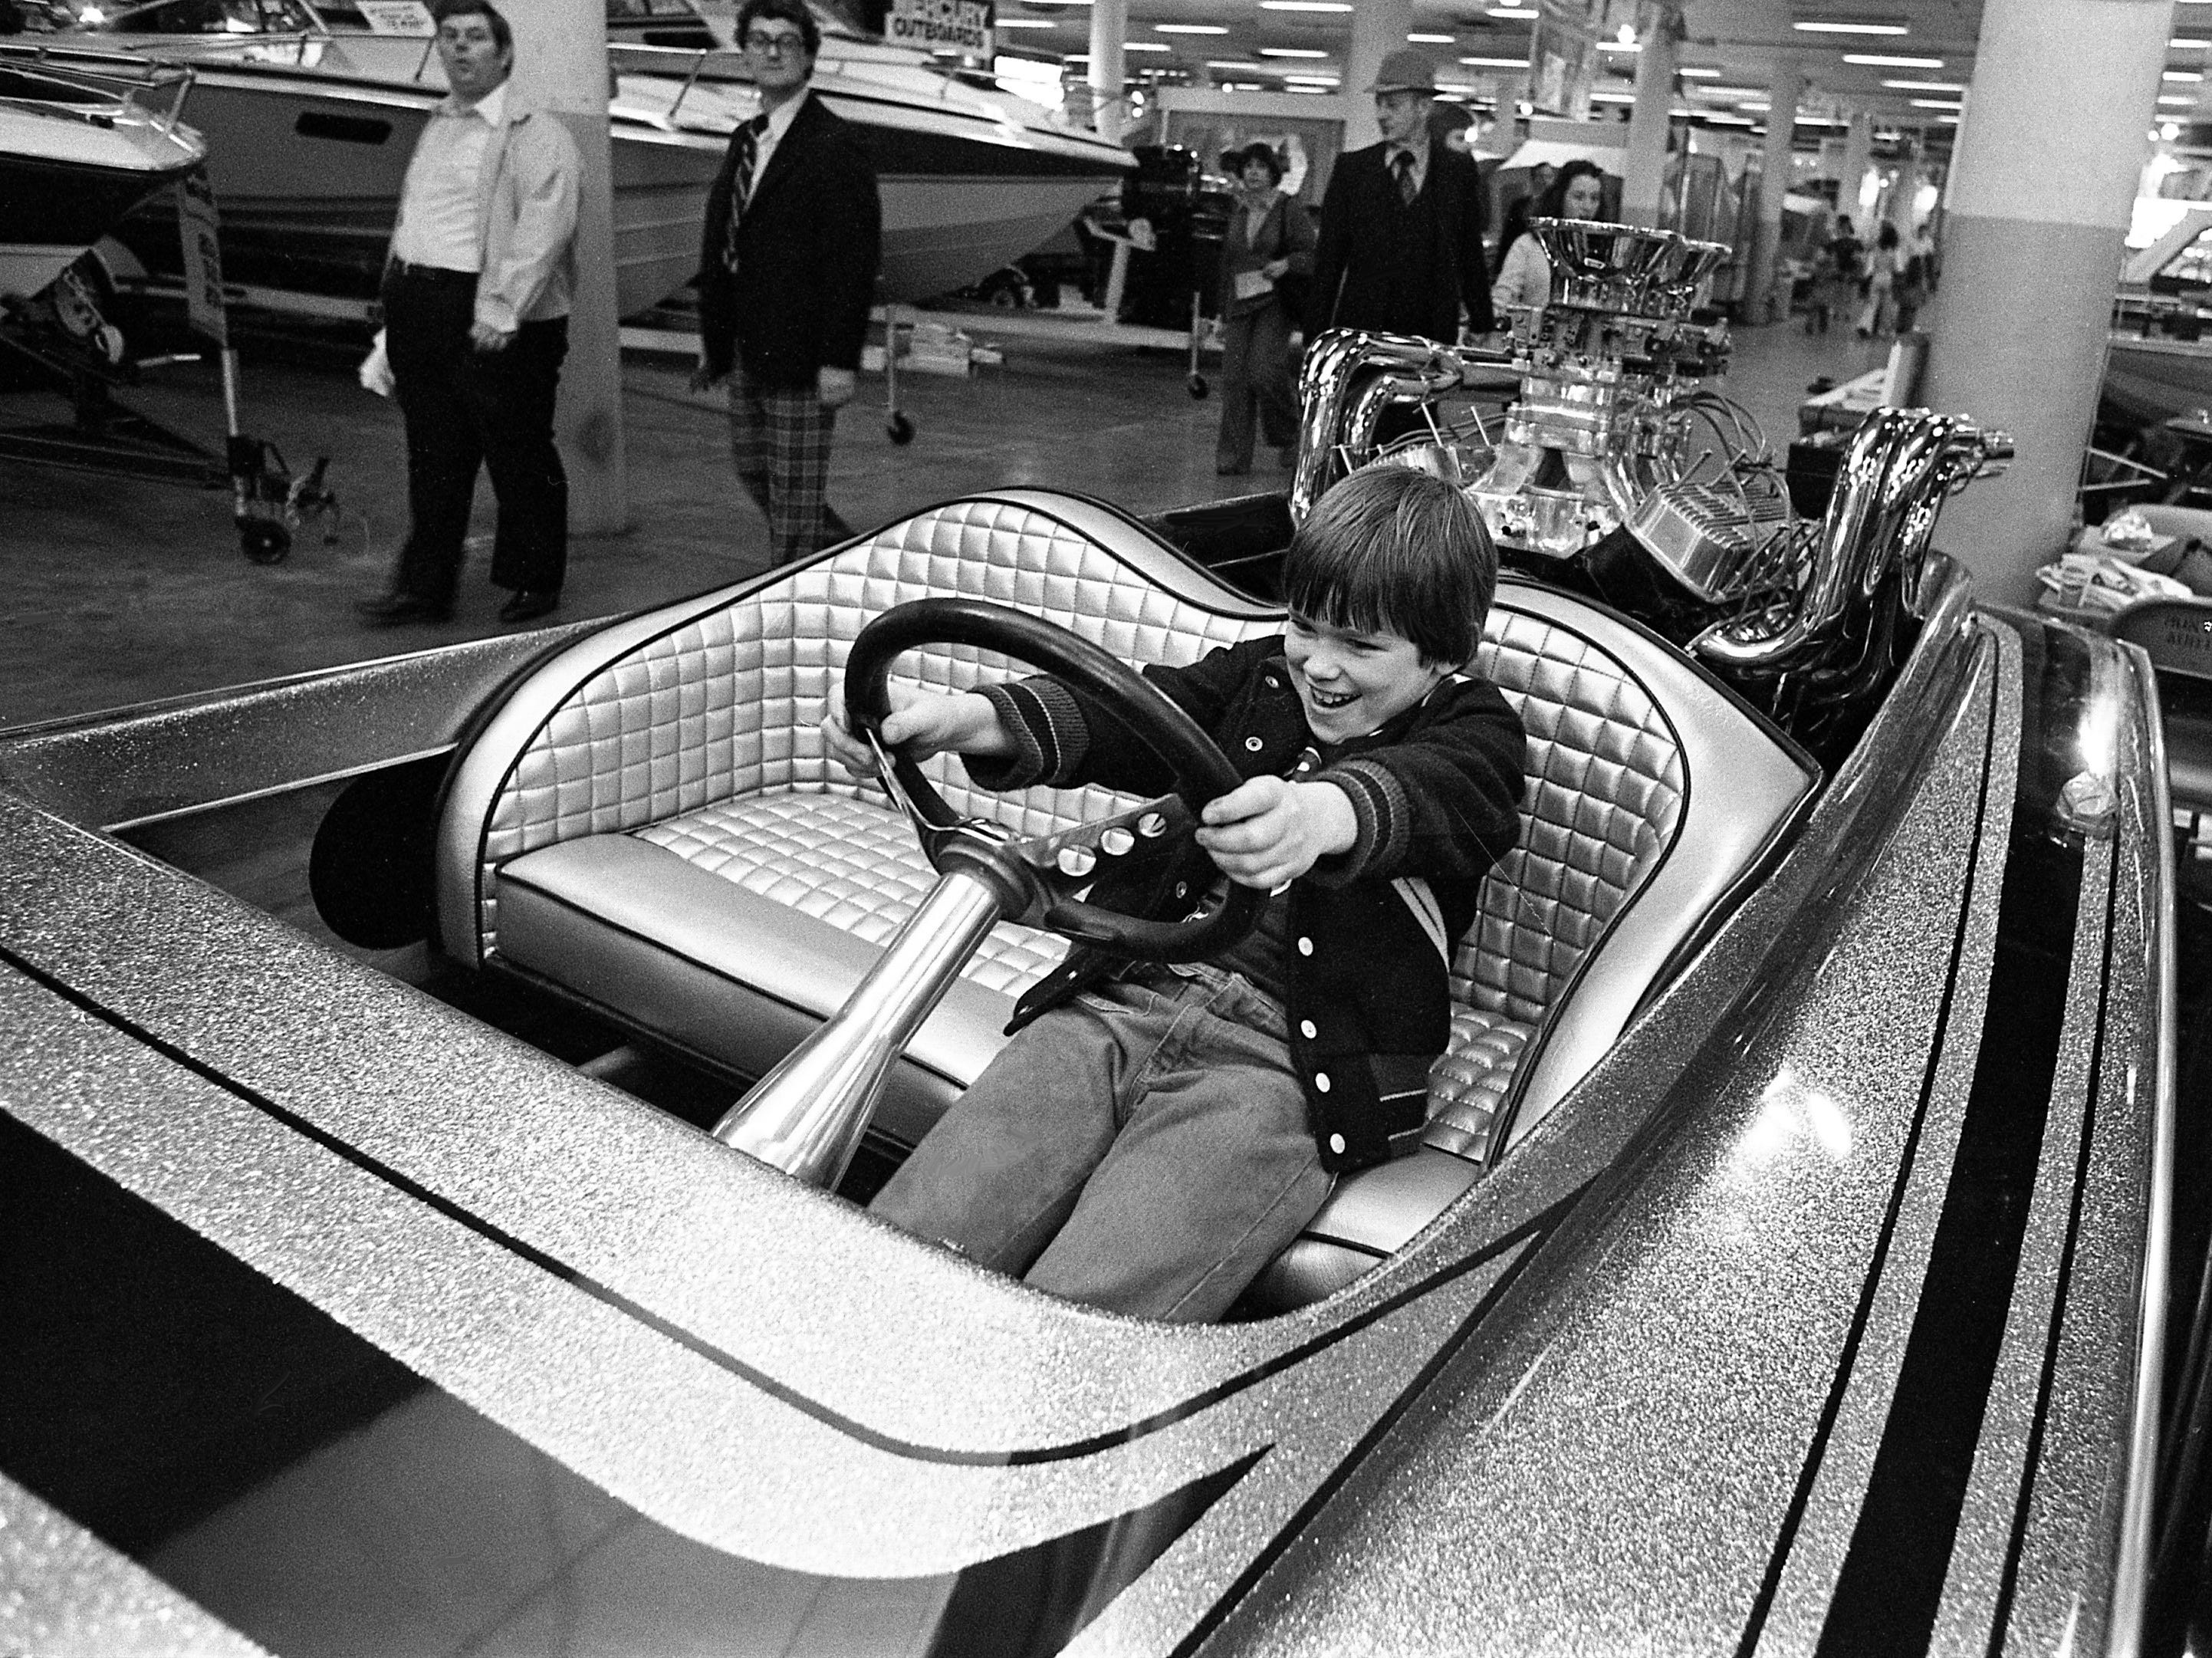 Cayce Joe Cobb, 8, son of Mr. and Mrs. Robert Cobb of Nashville, just may have lead feet as he gets the feel of this high-powered speedboat during the 23rd annual Great Lakes of the South Outdoor show at the Municipal Auditorium on Feb. 15, 1979.